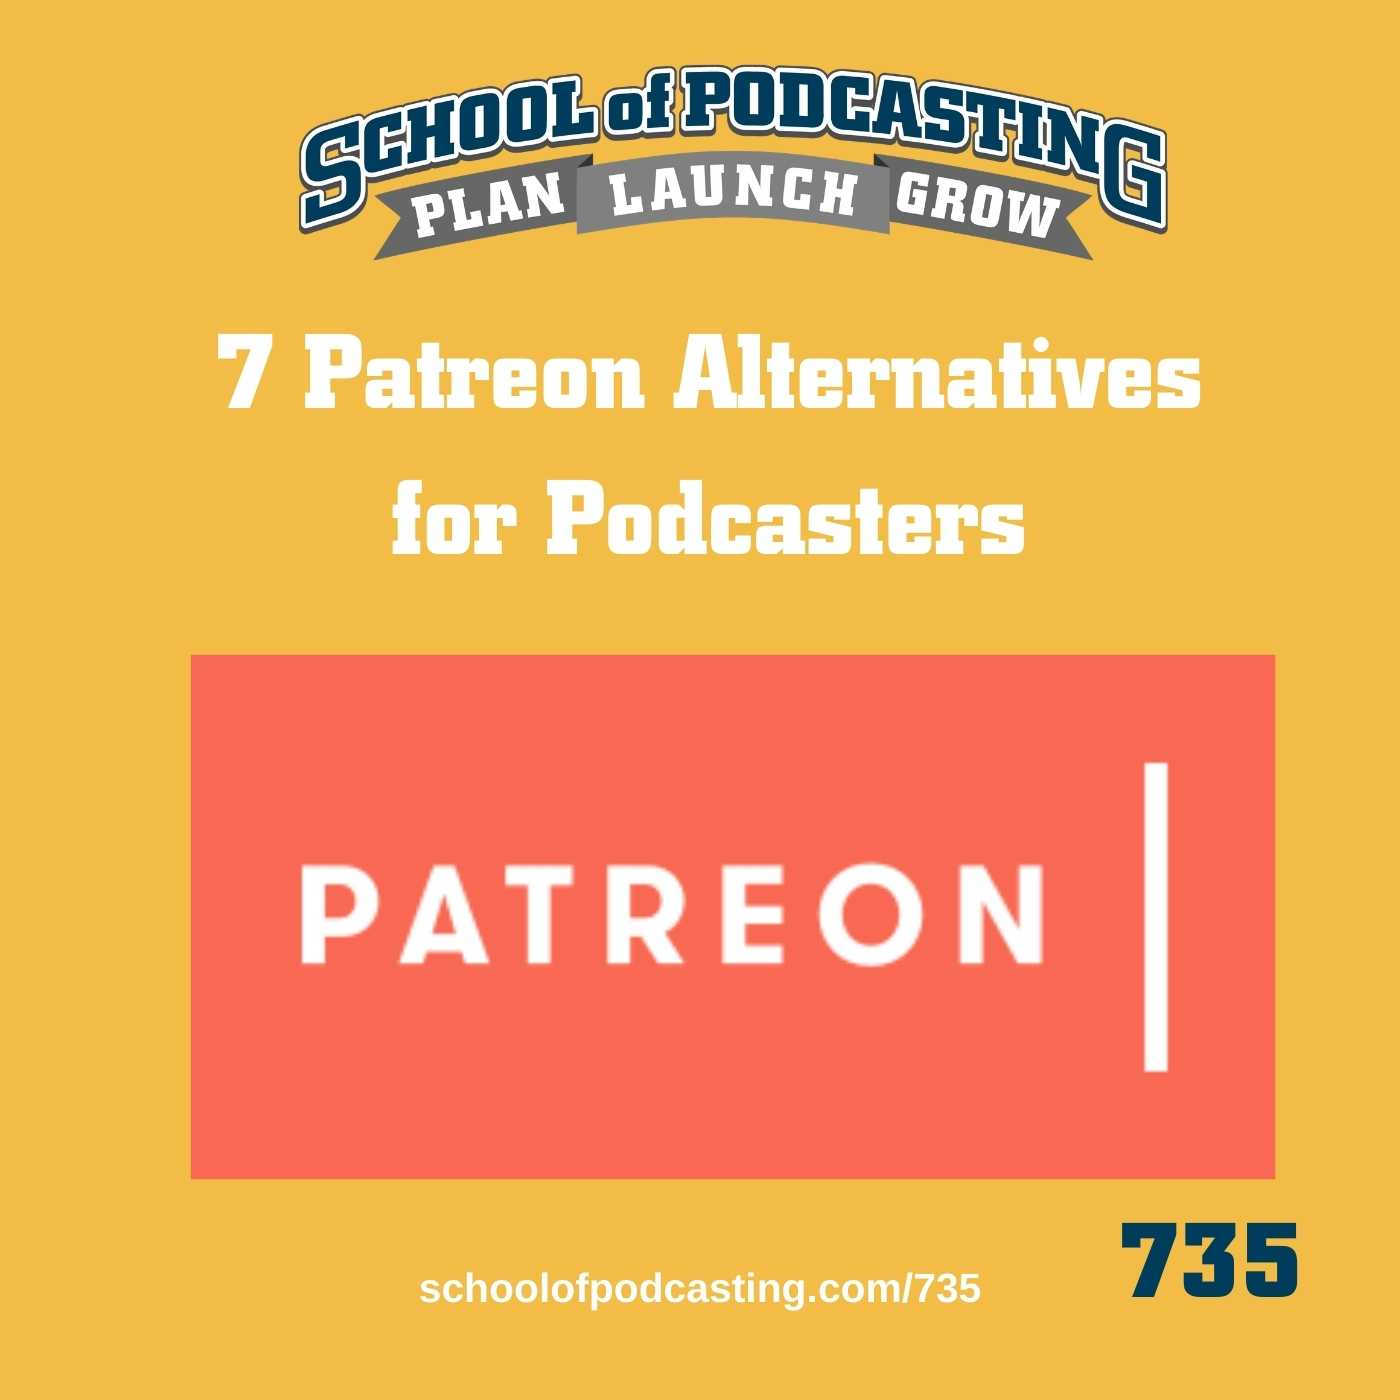 7 Patreon Alternatives For Podcasters